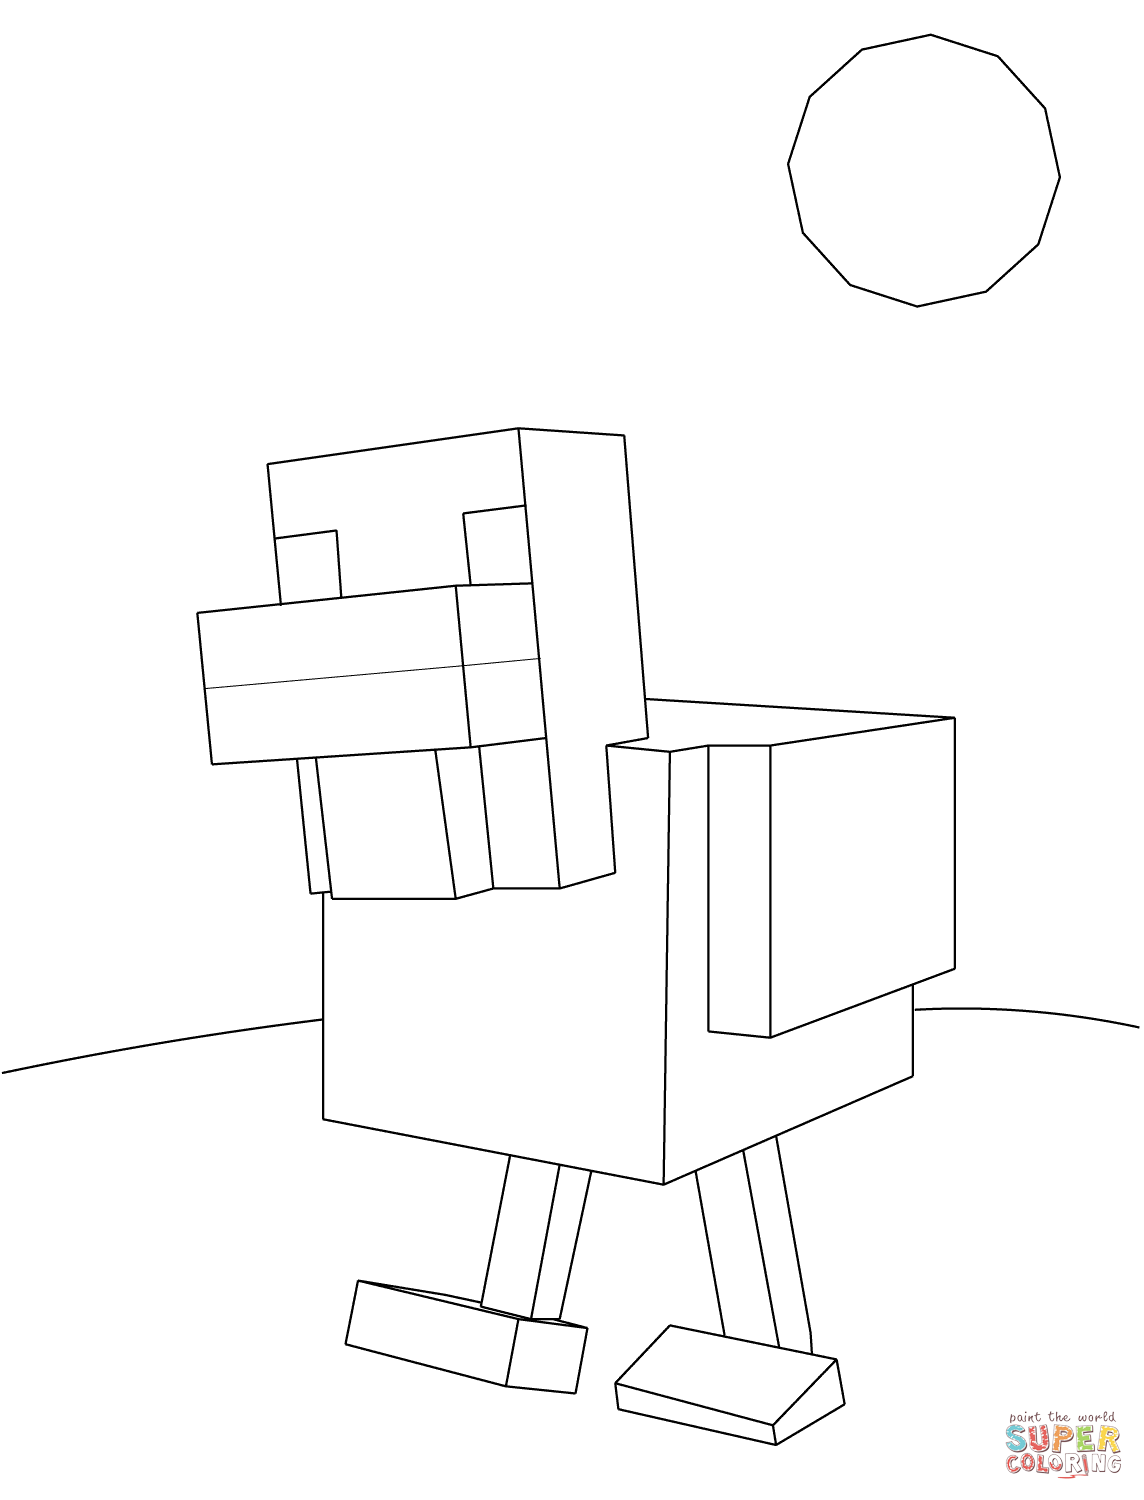 minecraft iron golem coloring pages minecraft iron golem coloring pages at getcoloringscom minecraft iron pages golem coloring 1 1